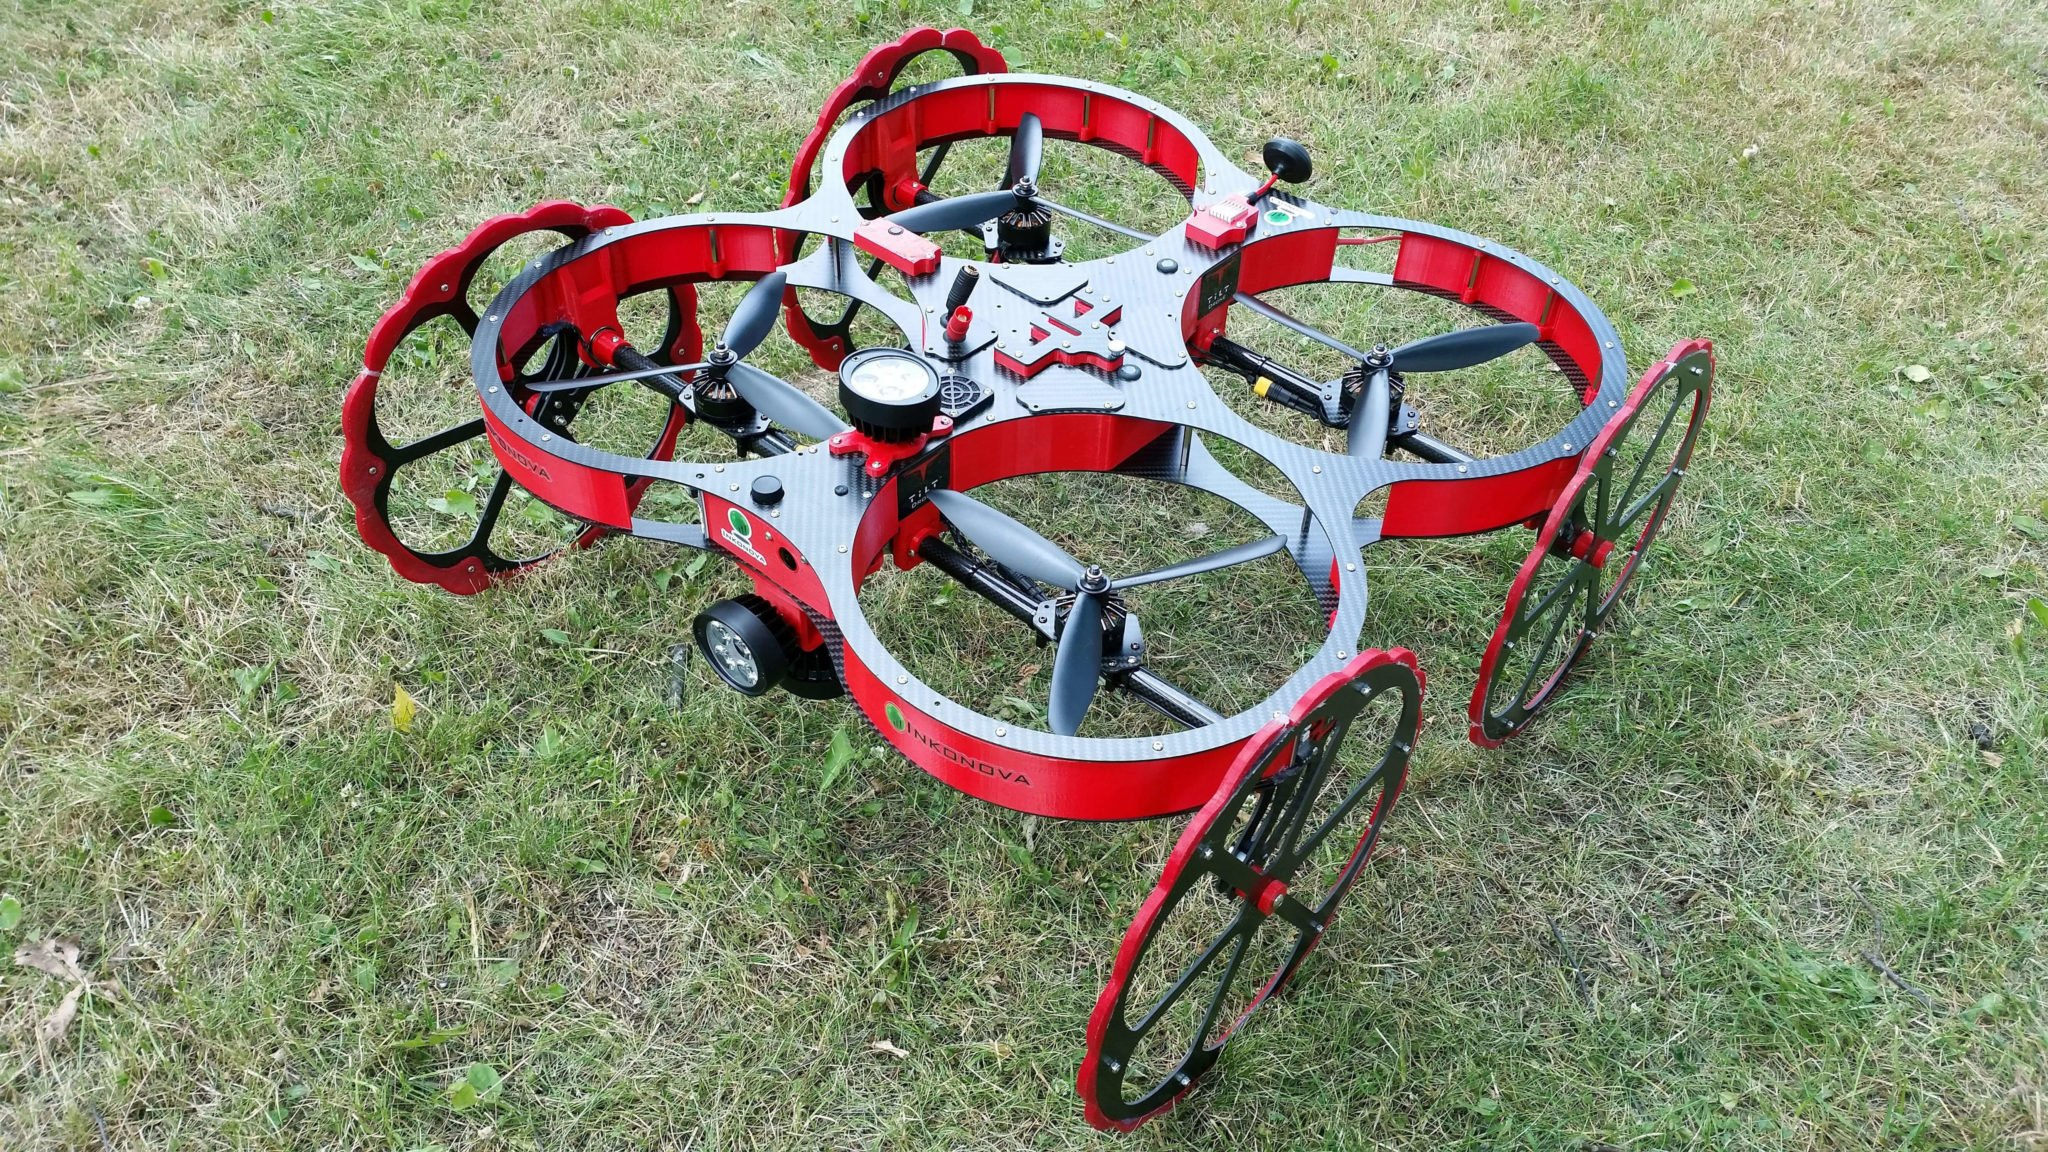 Japan-based Terra Drone acquires significant stake in Inkonova. - sUAS News - The Business of Drones